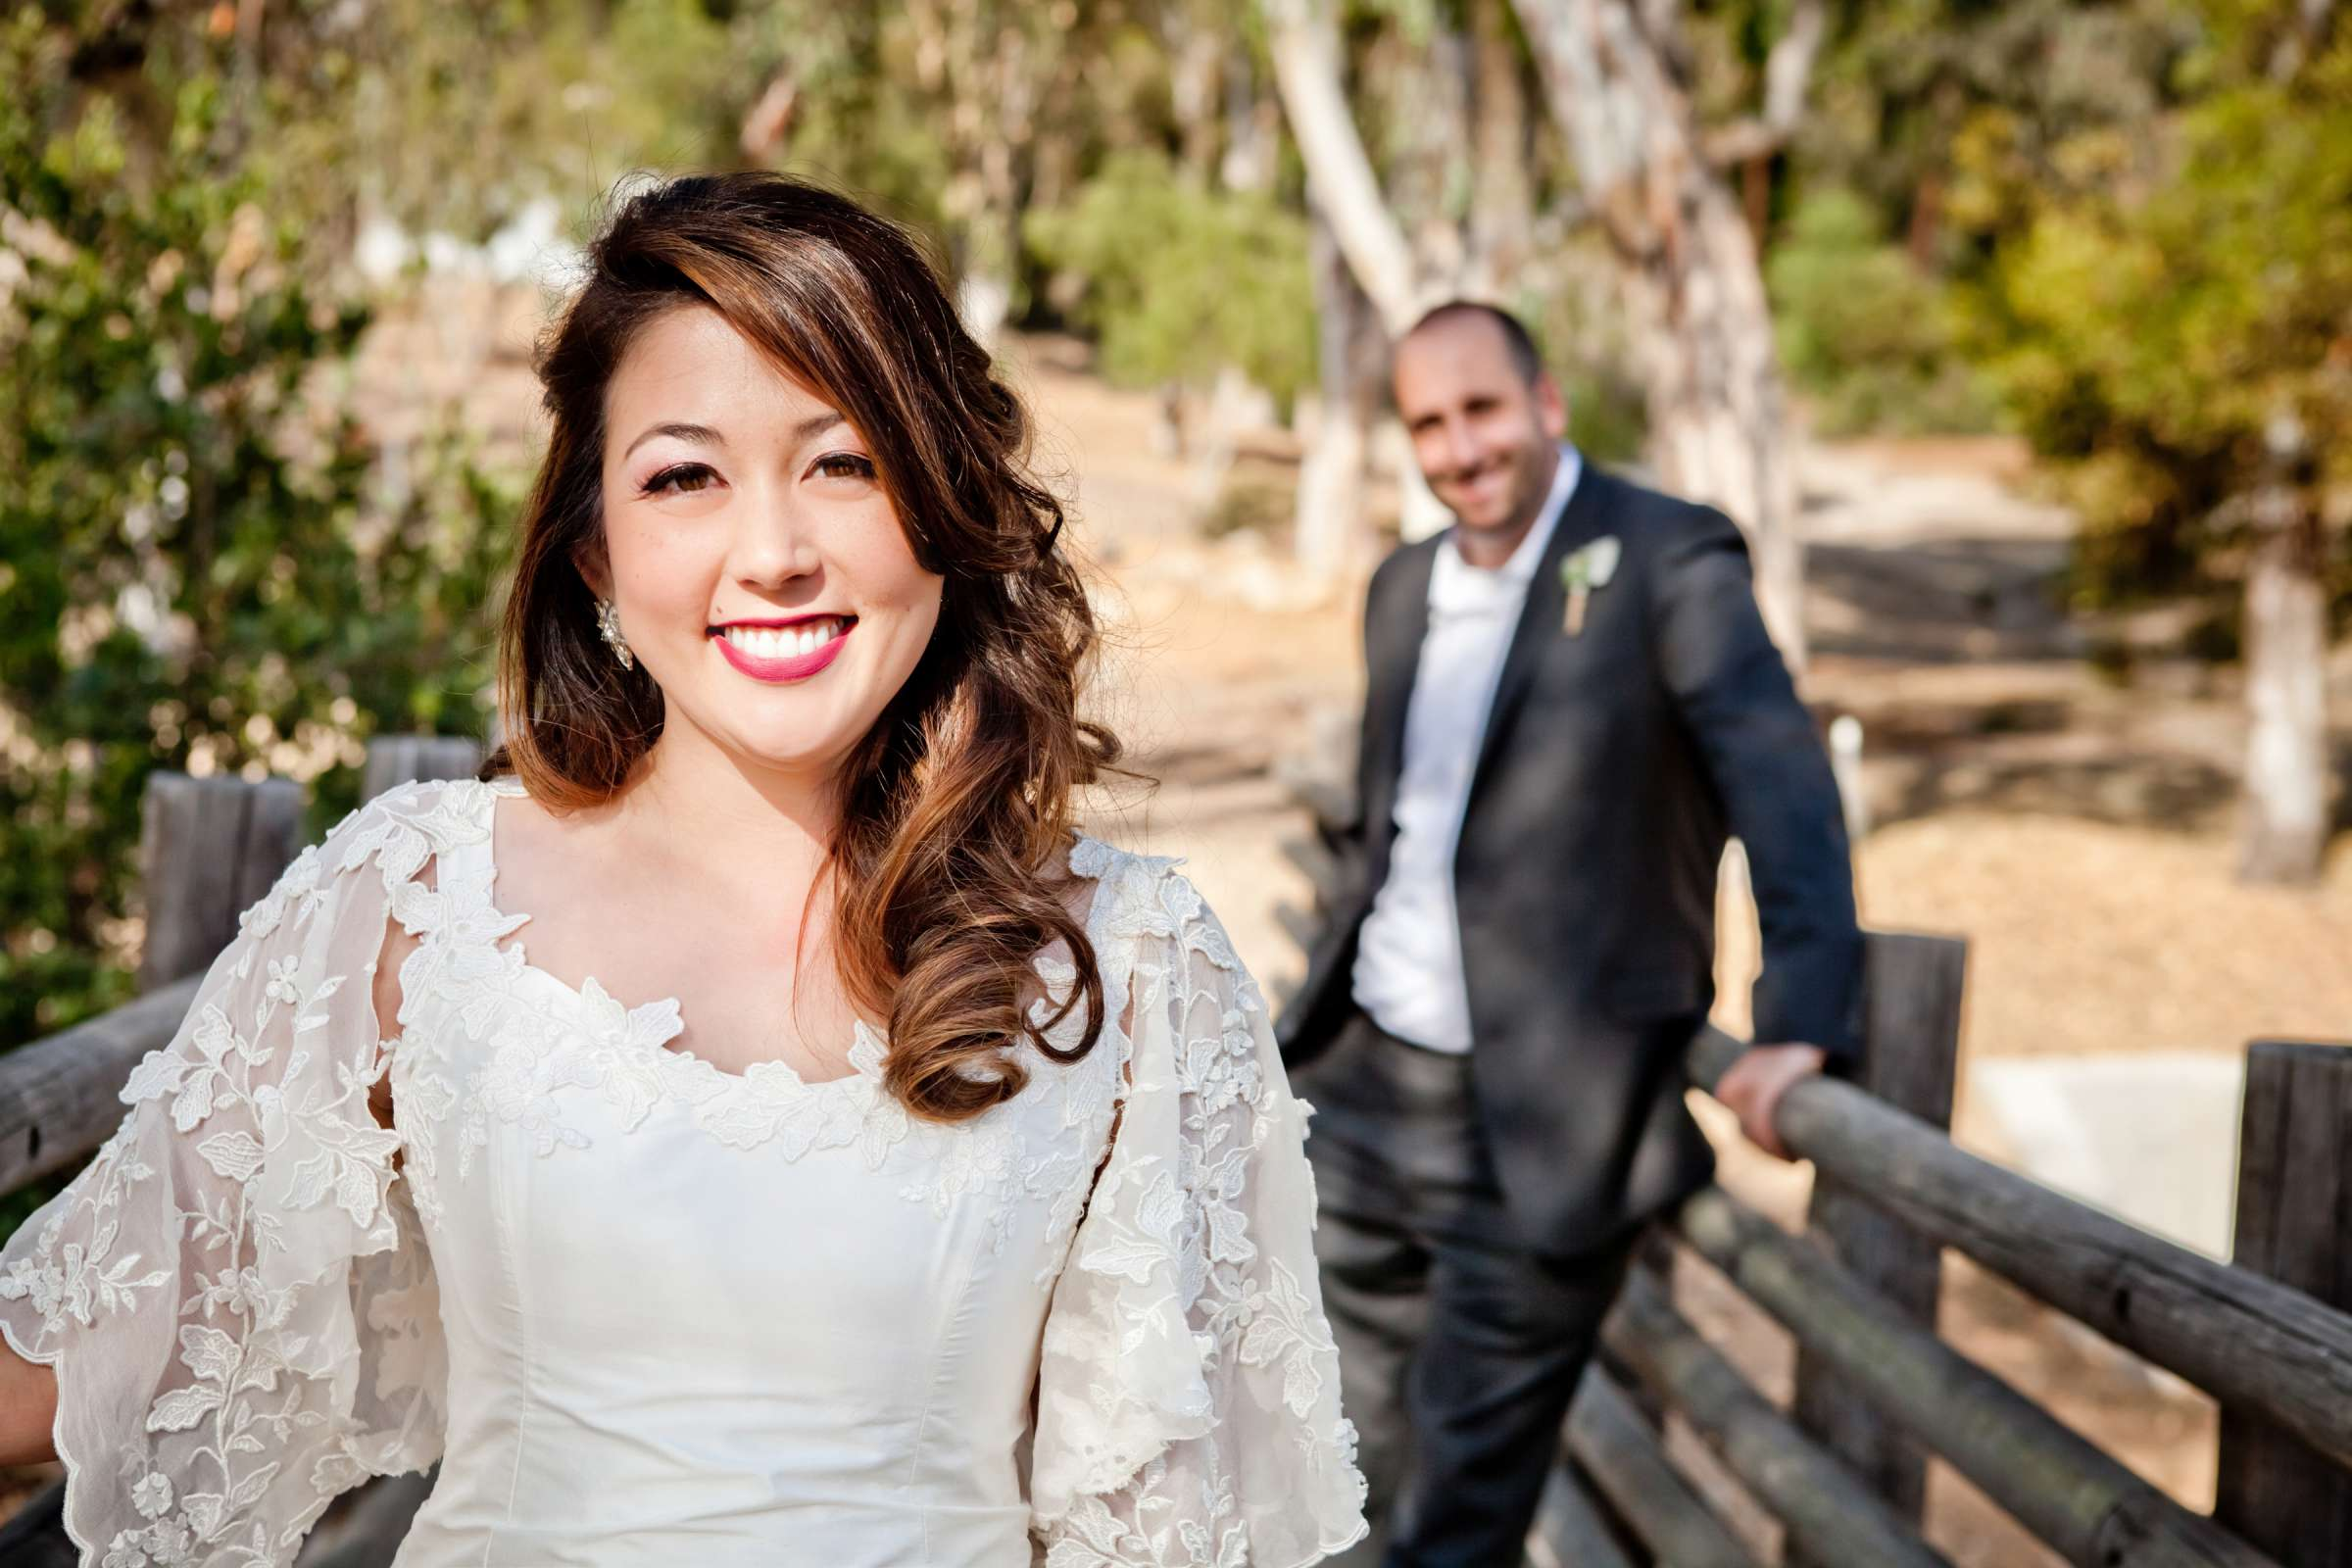 Leo Carrillo Ranch Wedding coordinated by Weddings by Lisa Nicole, Bethany and Aaron Wedding Photo #15 by True Photography